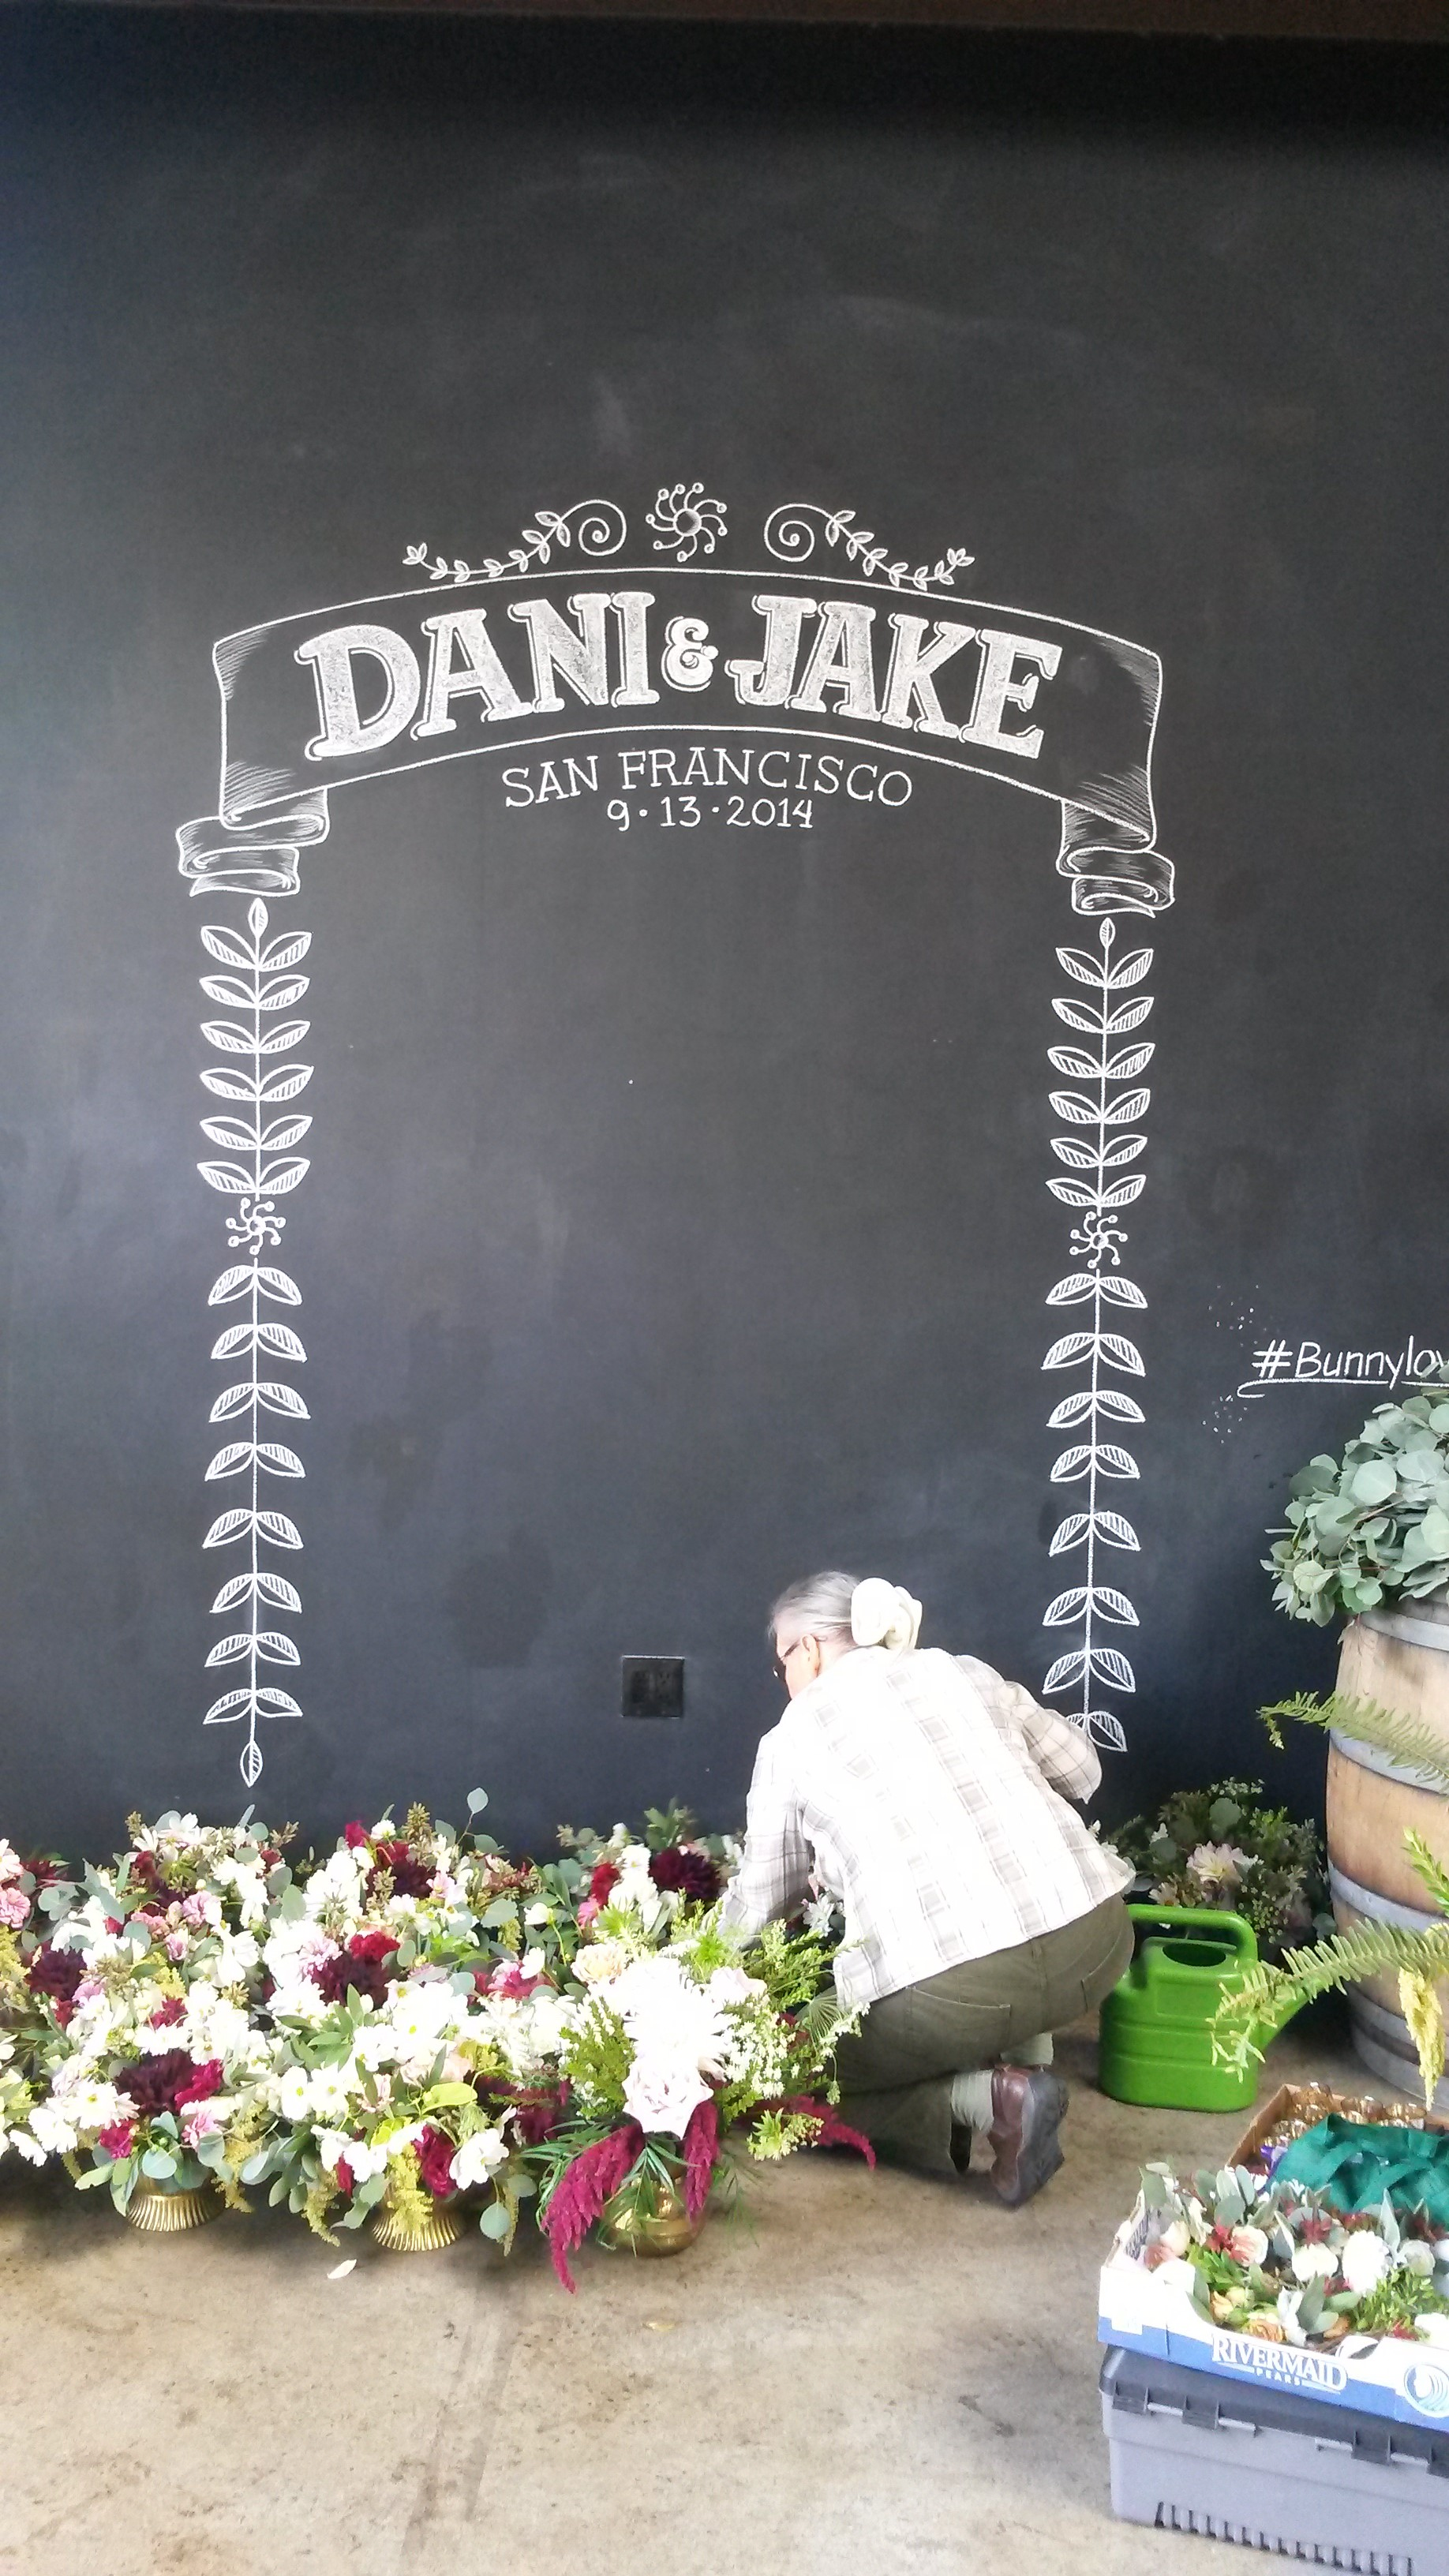 Dani & Jake Photo Booth Chalk Design